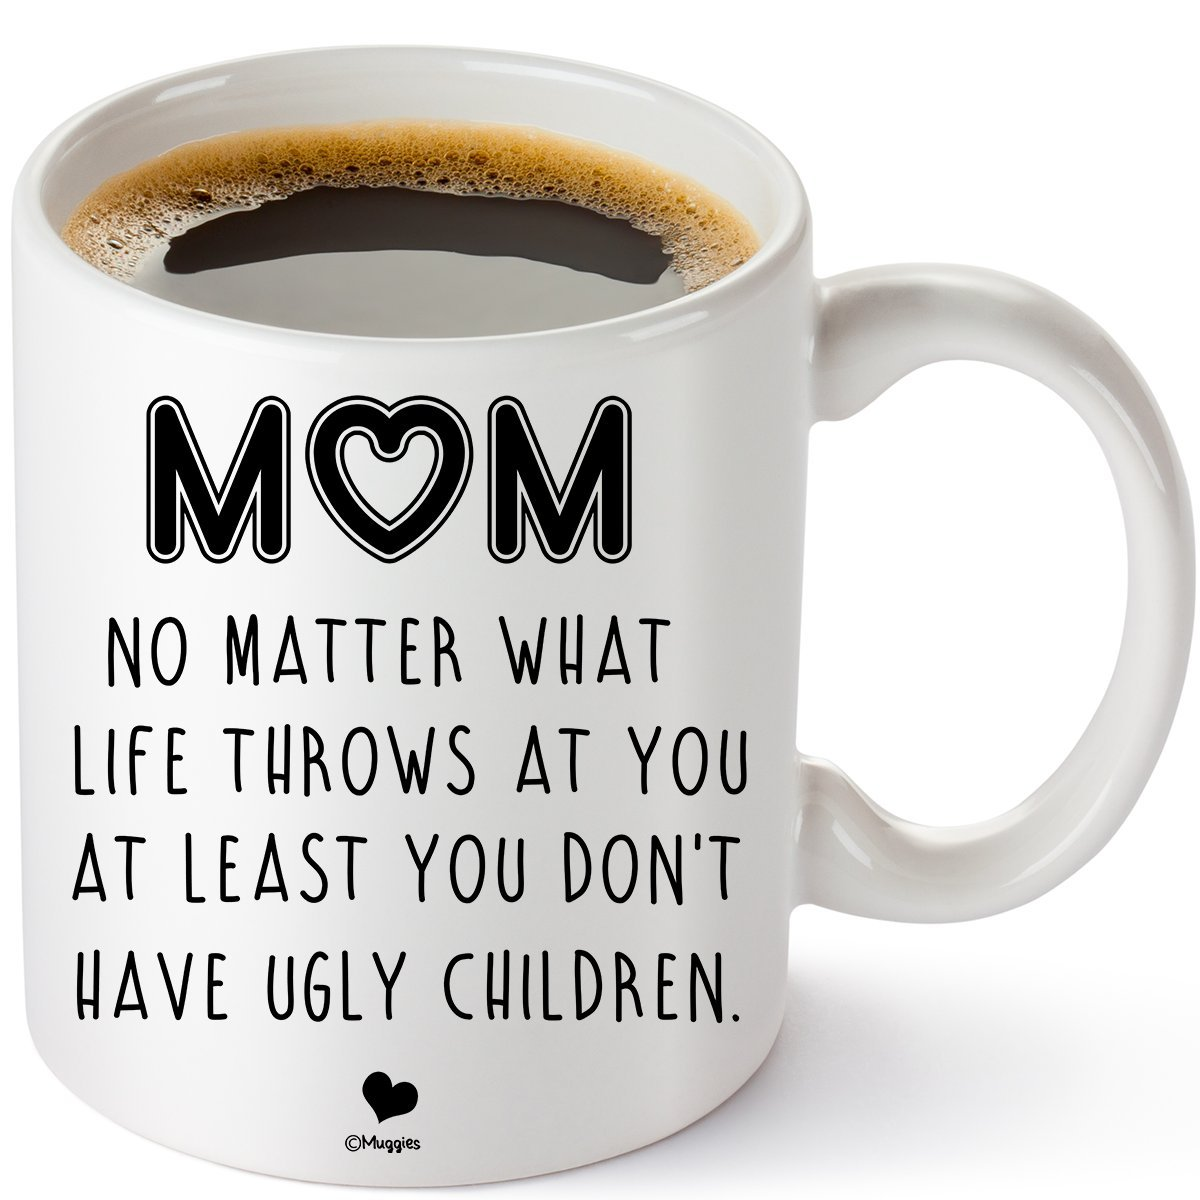 Muggies Mom Ugly Children Funny 11 oz Personalized Coffee/Tea Mug for Mother and Wife, Unique Hilarious Gift for Her Birthday, Christmas, Mother's Day. Mother's Day. Mom3